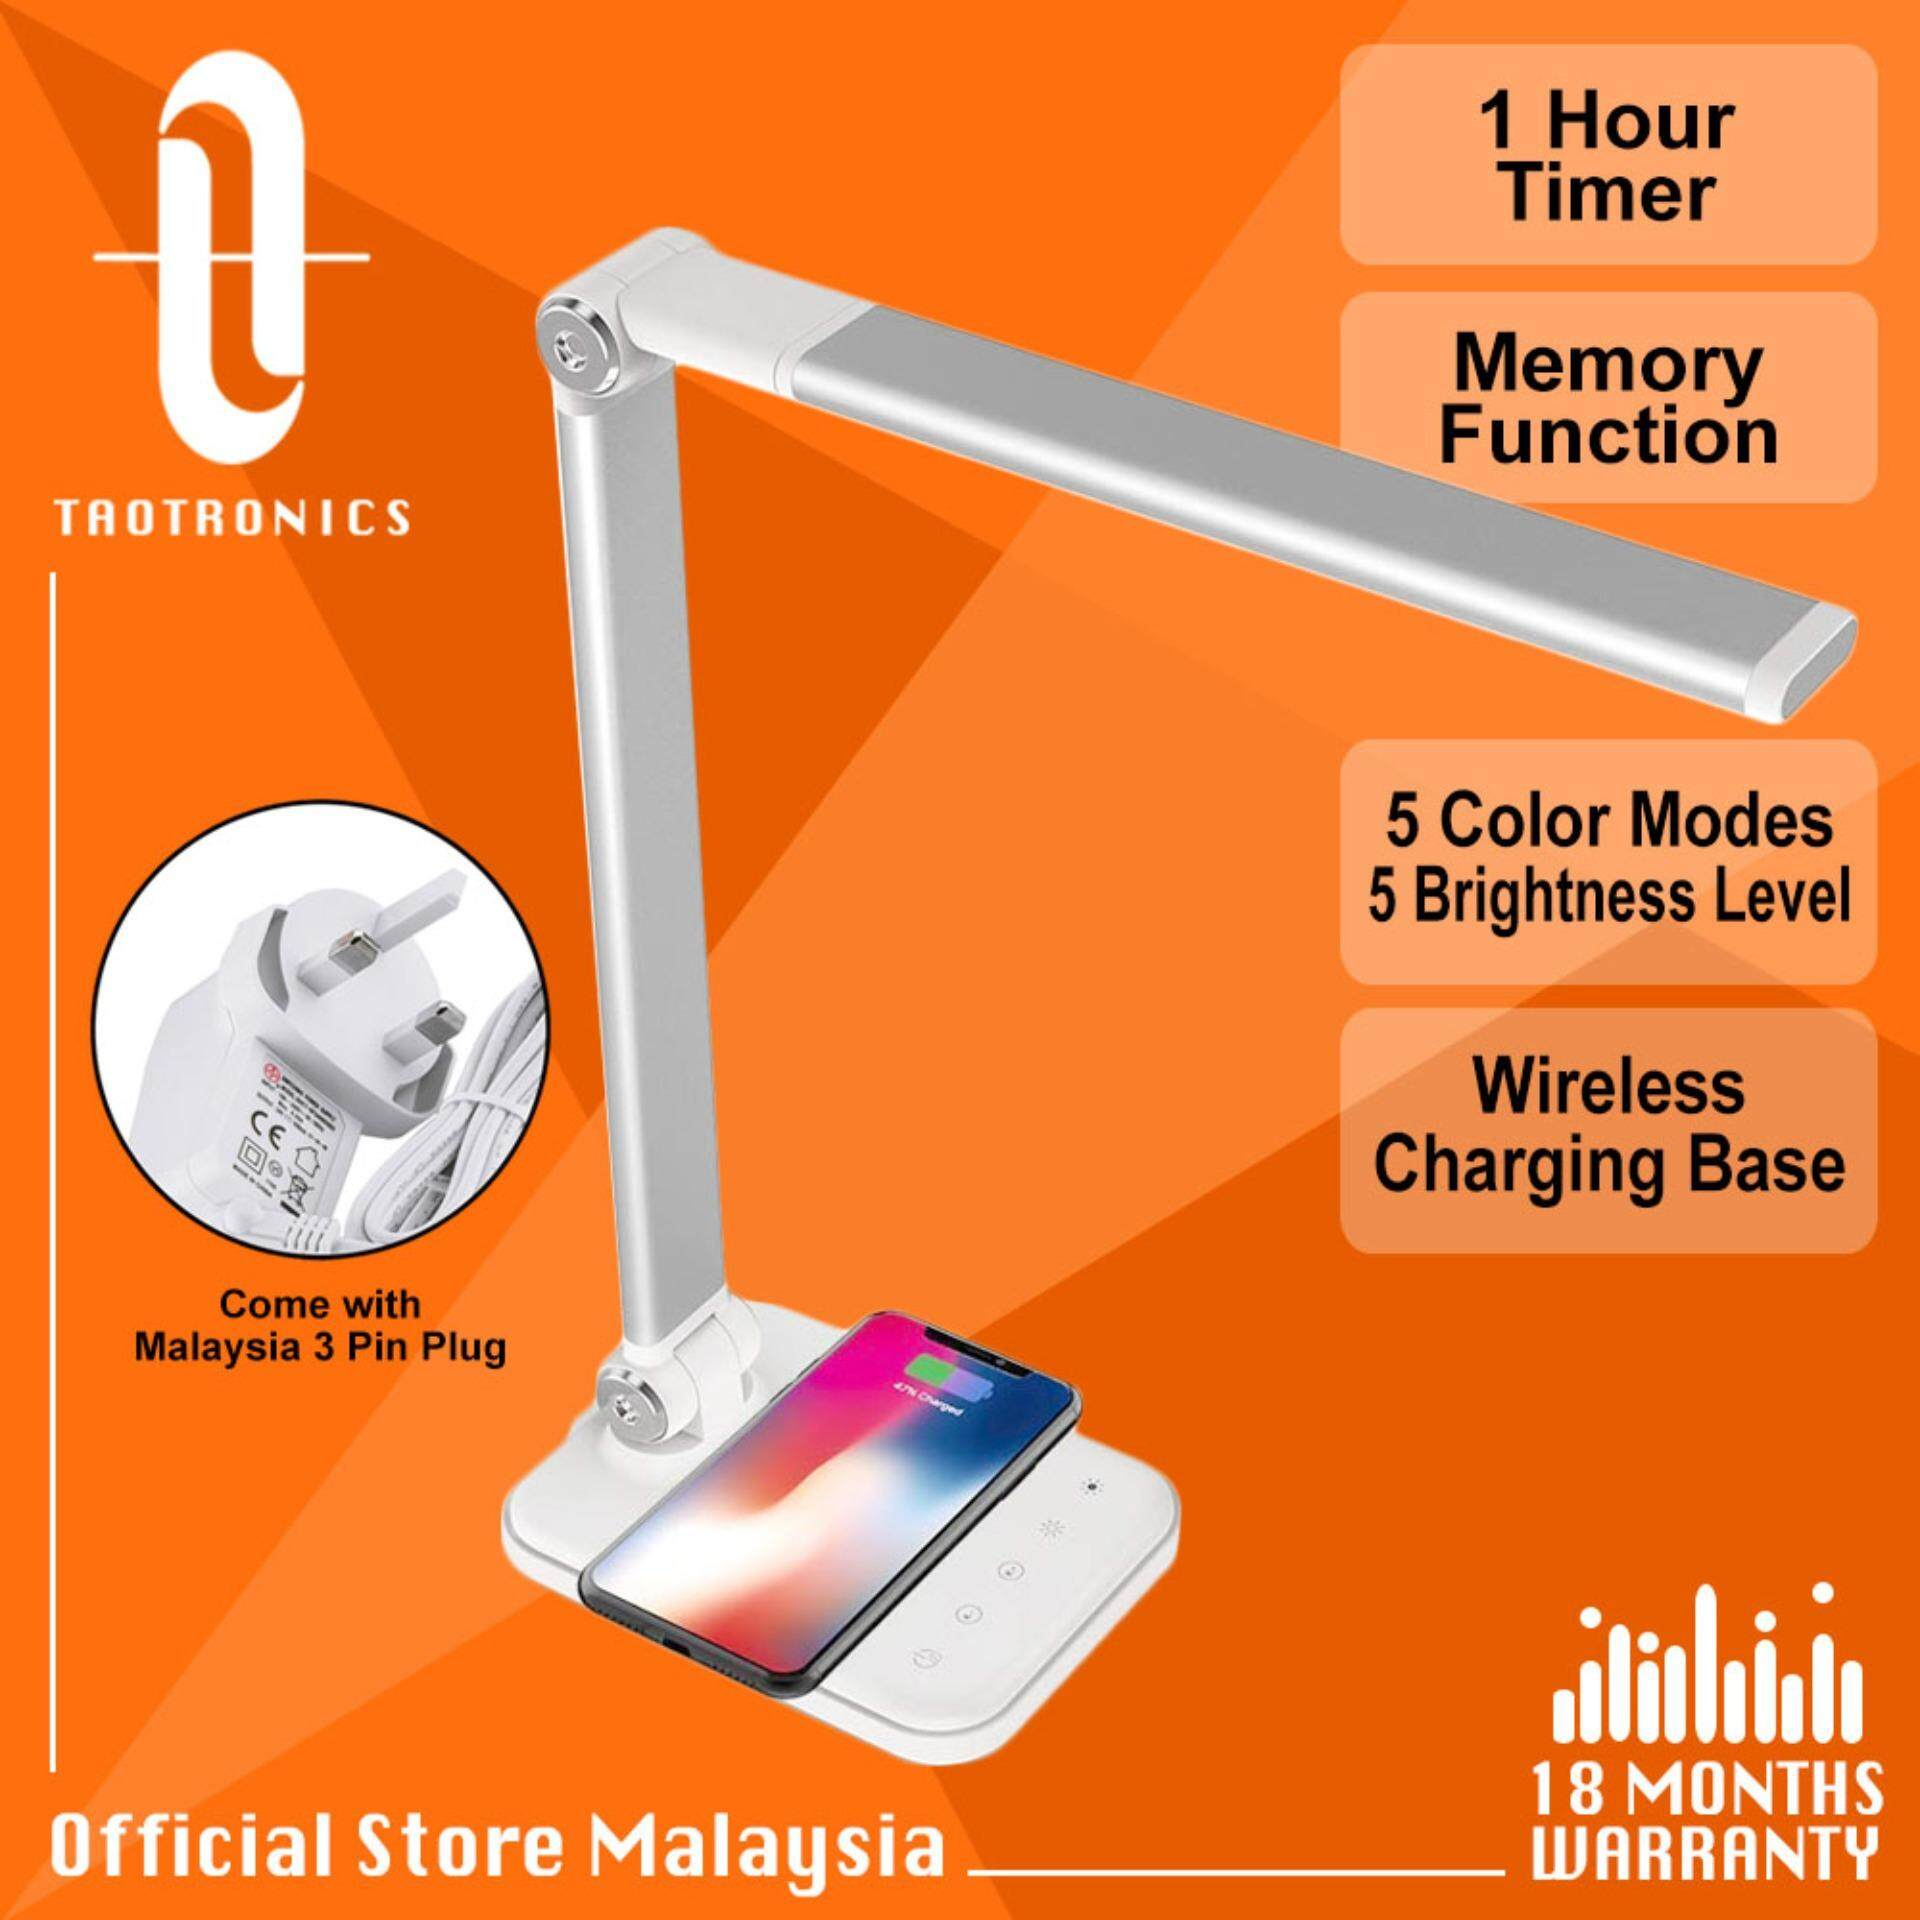 Taotronics 13W DL047 Dimmable Desk Lamp with Smartphone Wireless Charging Base, TT Table Lamp,Philips Enabled Licensing Program, 5 Color Temperatures with 5 Brightness Levels, Touch Control, Flexible Construction, 1H Timer and Memory Function